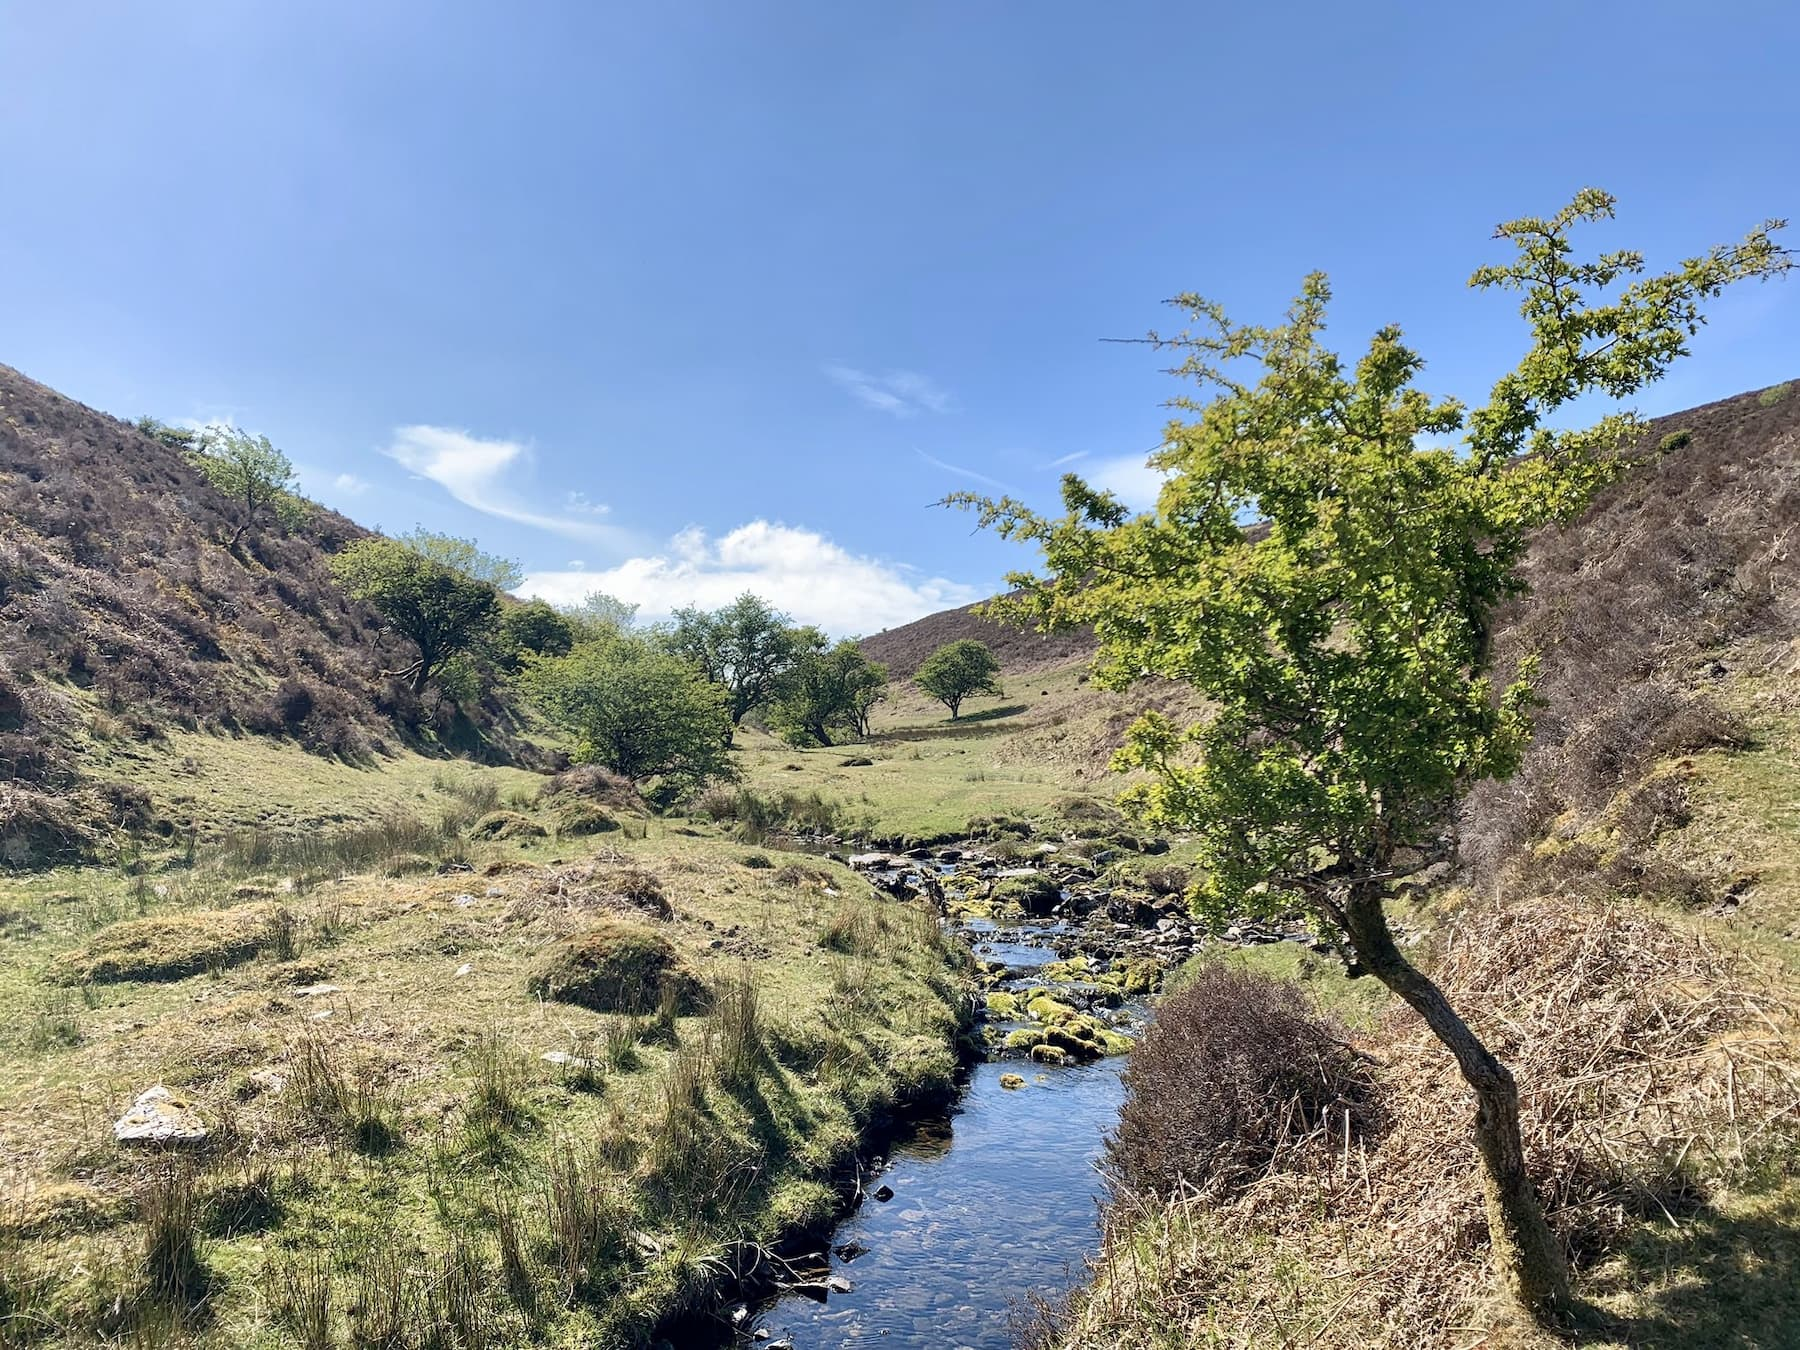 Higher up the Combe (Lankcombe water). Accessible via the Lorna Doone valley & Cloud Farm campsite. ©Sarah Hailstone